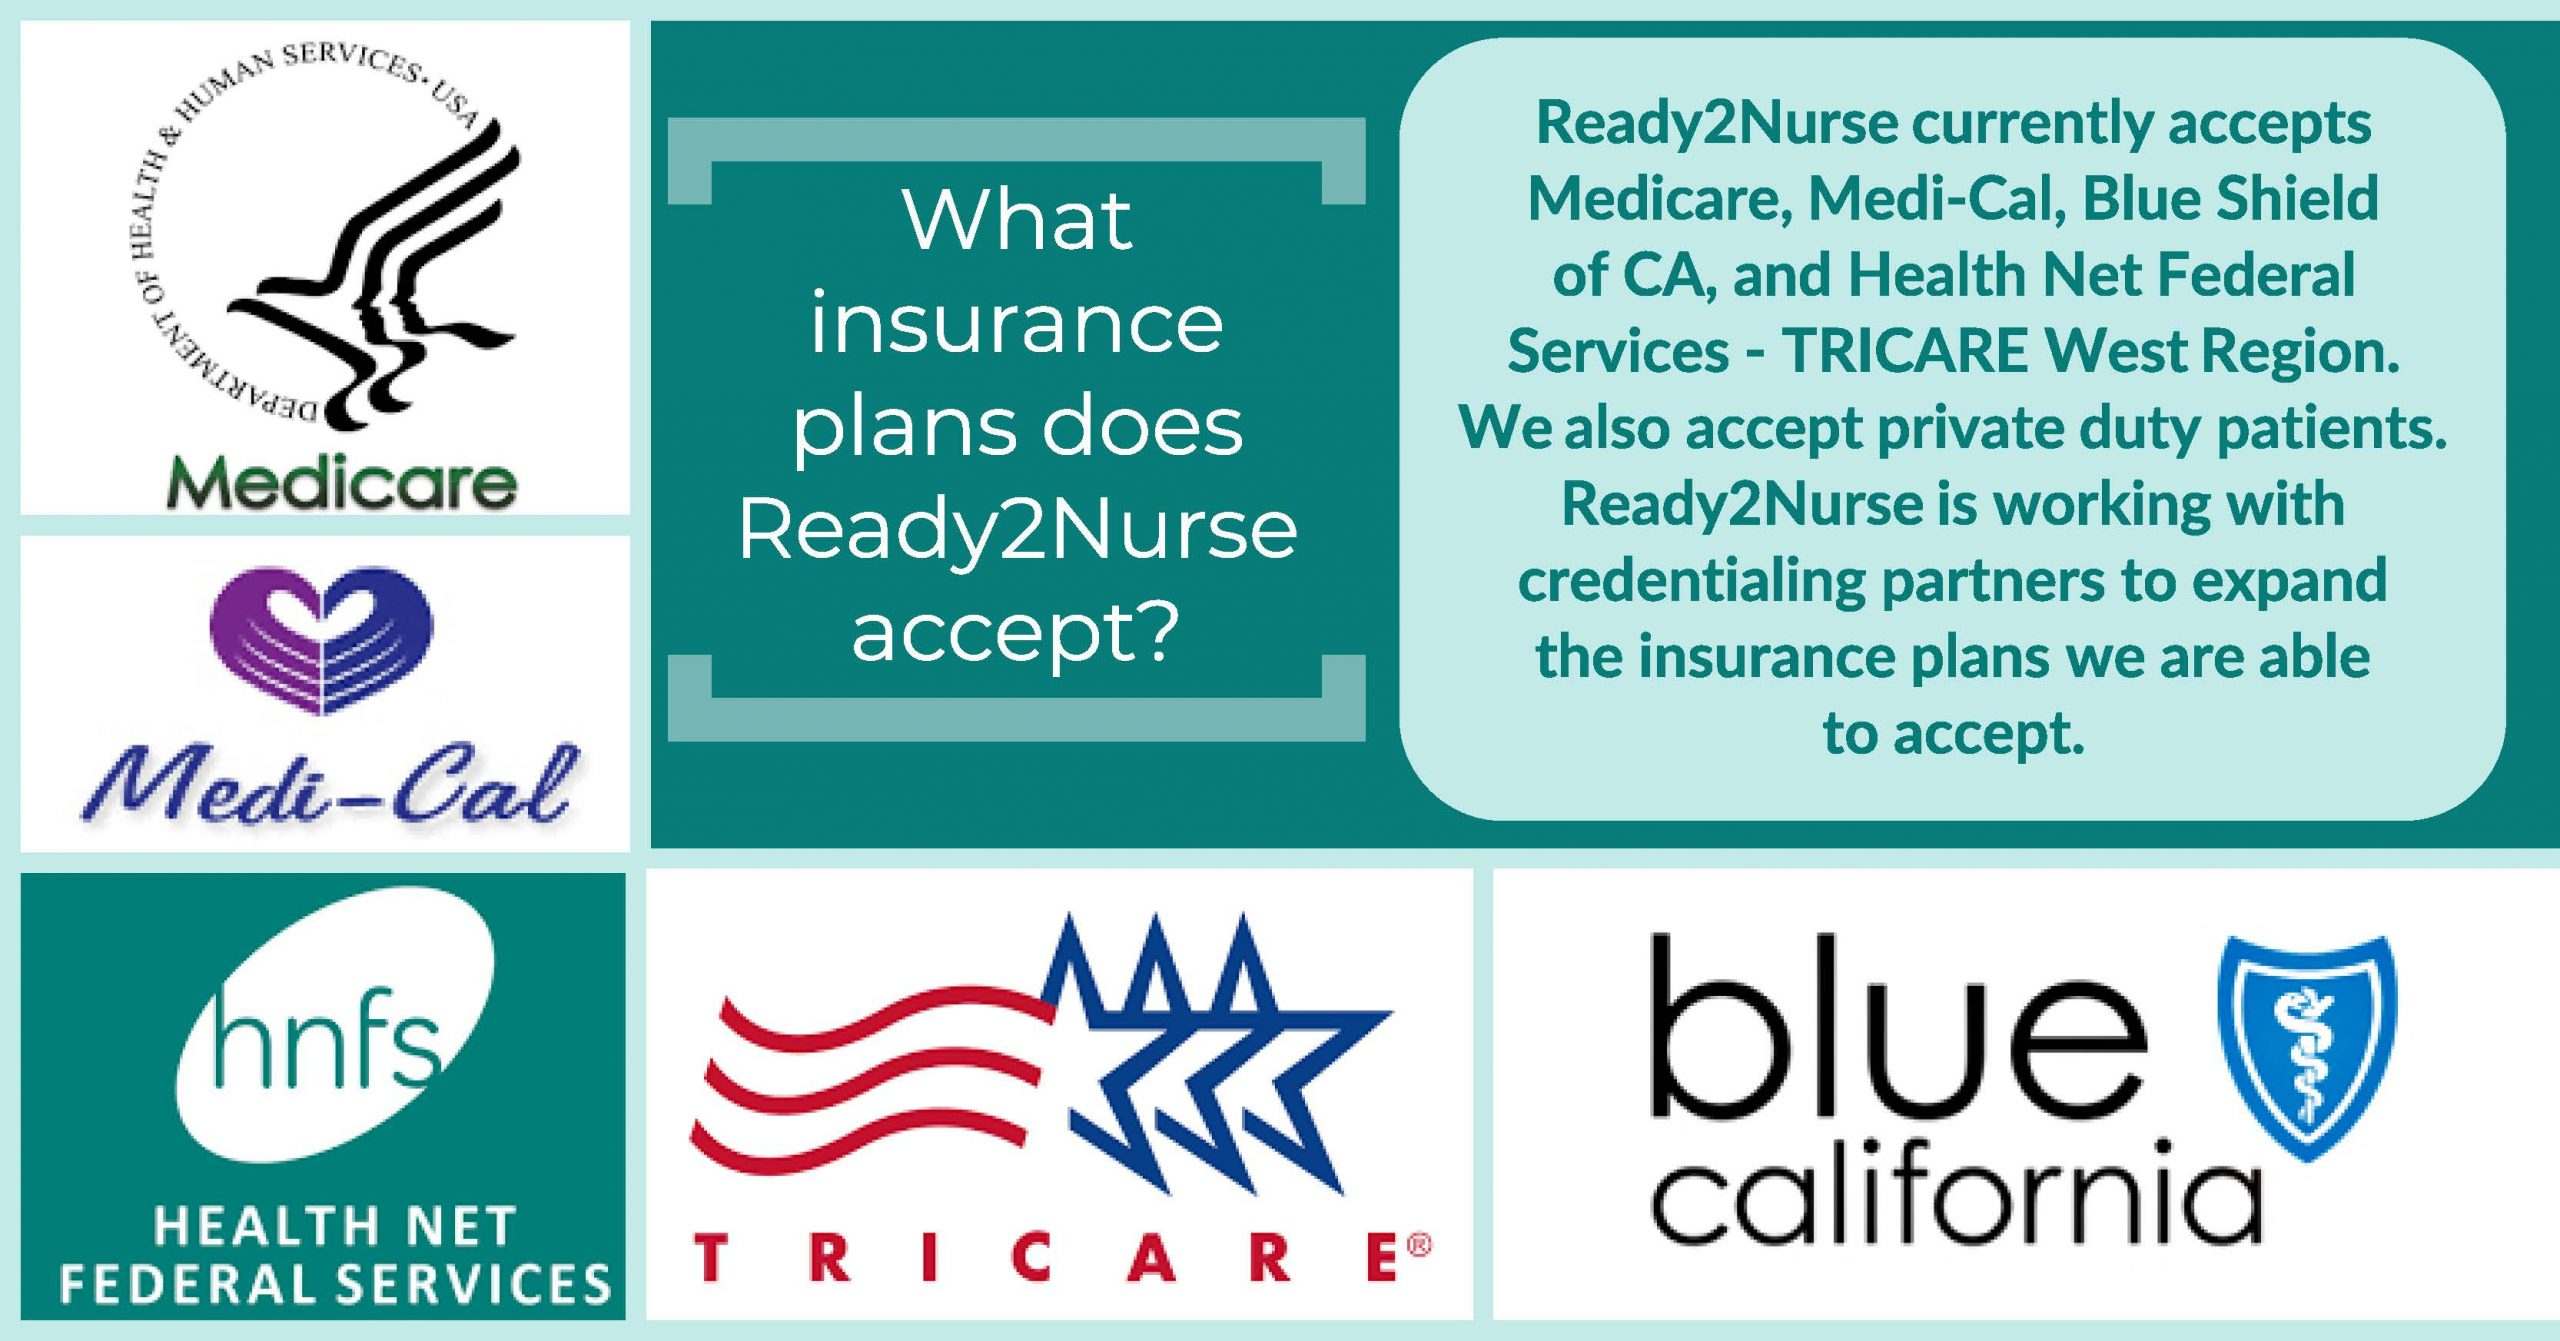 What insurance plans does Ready2Nurse accept?